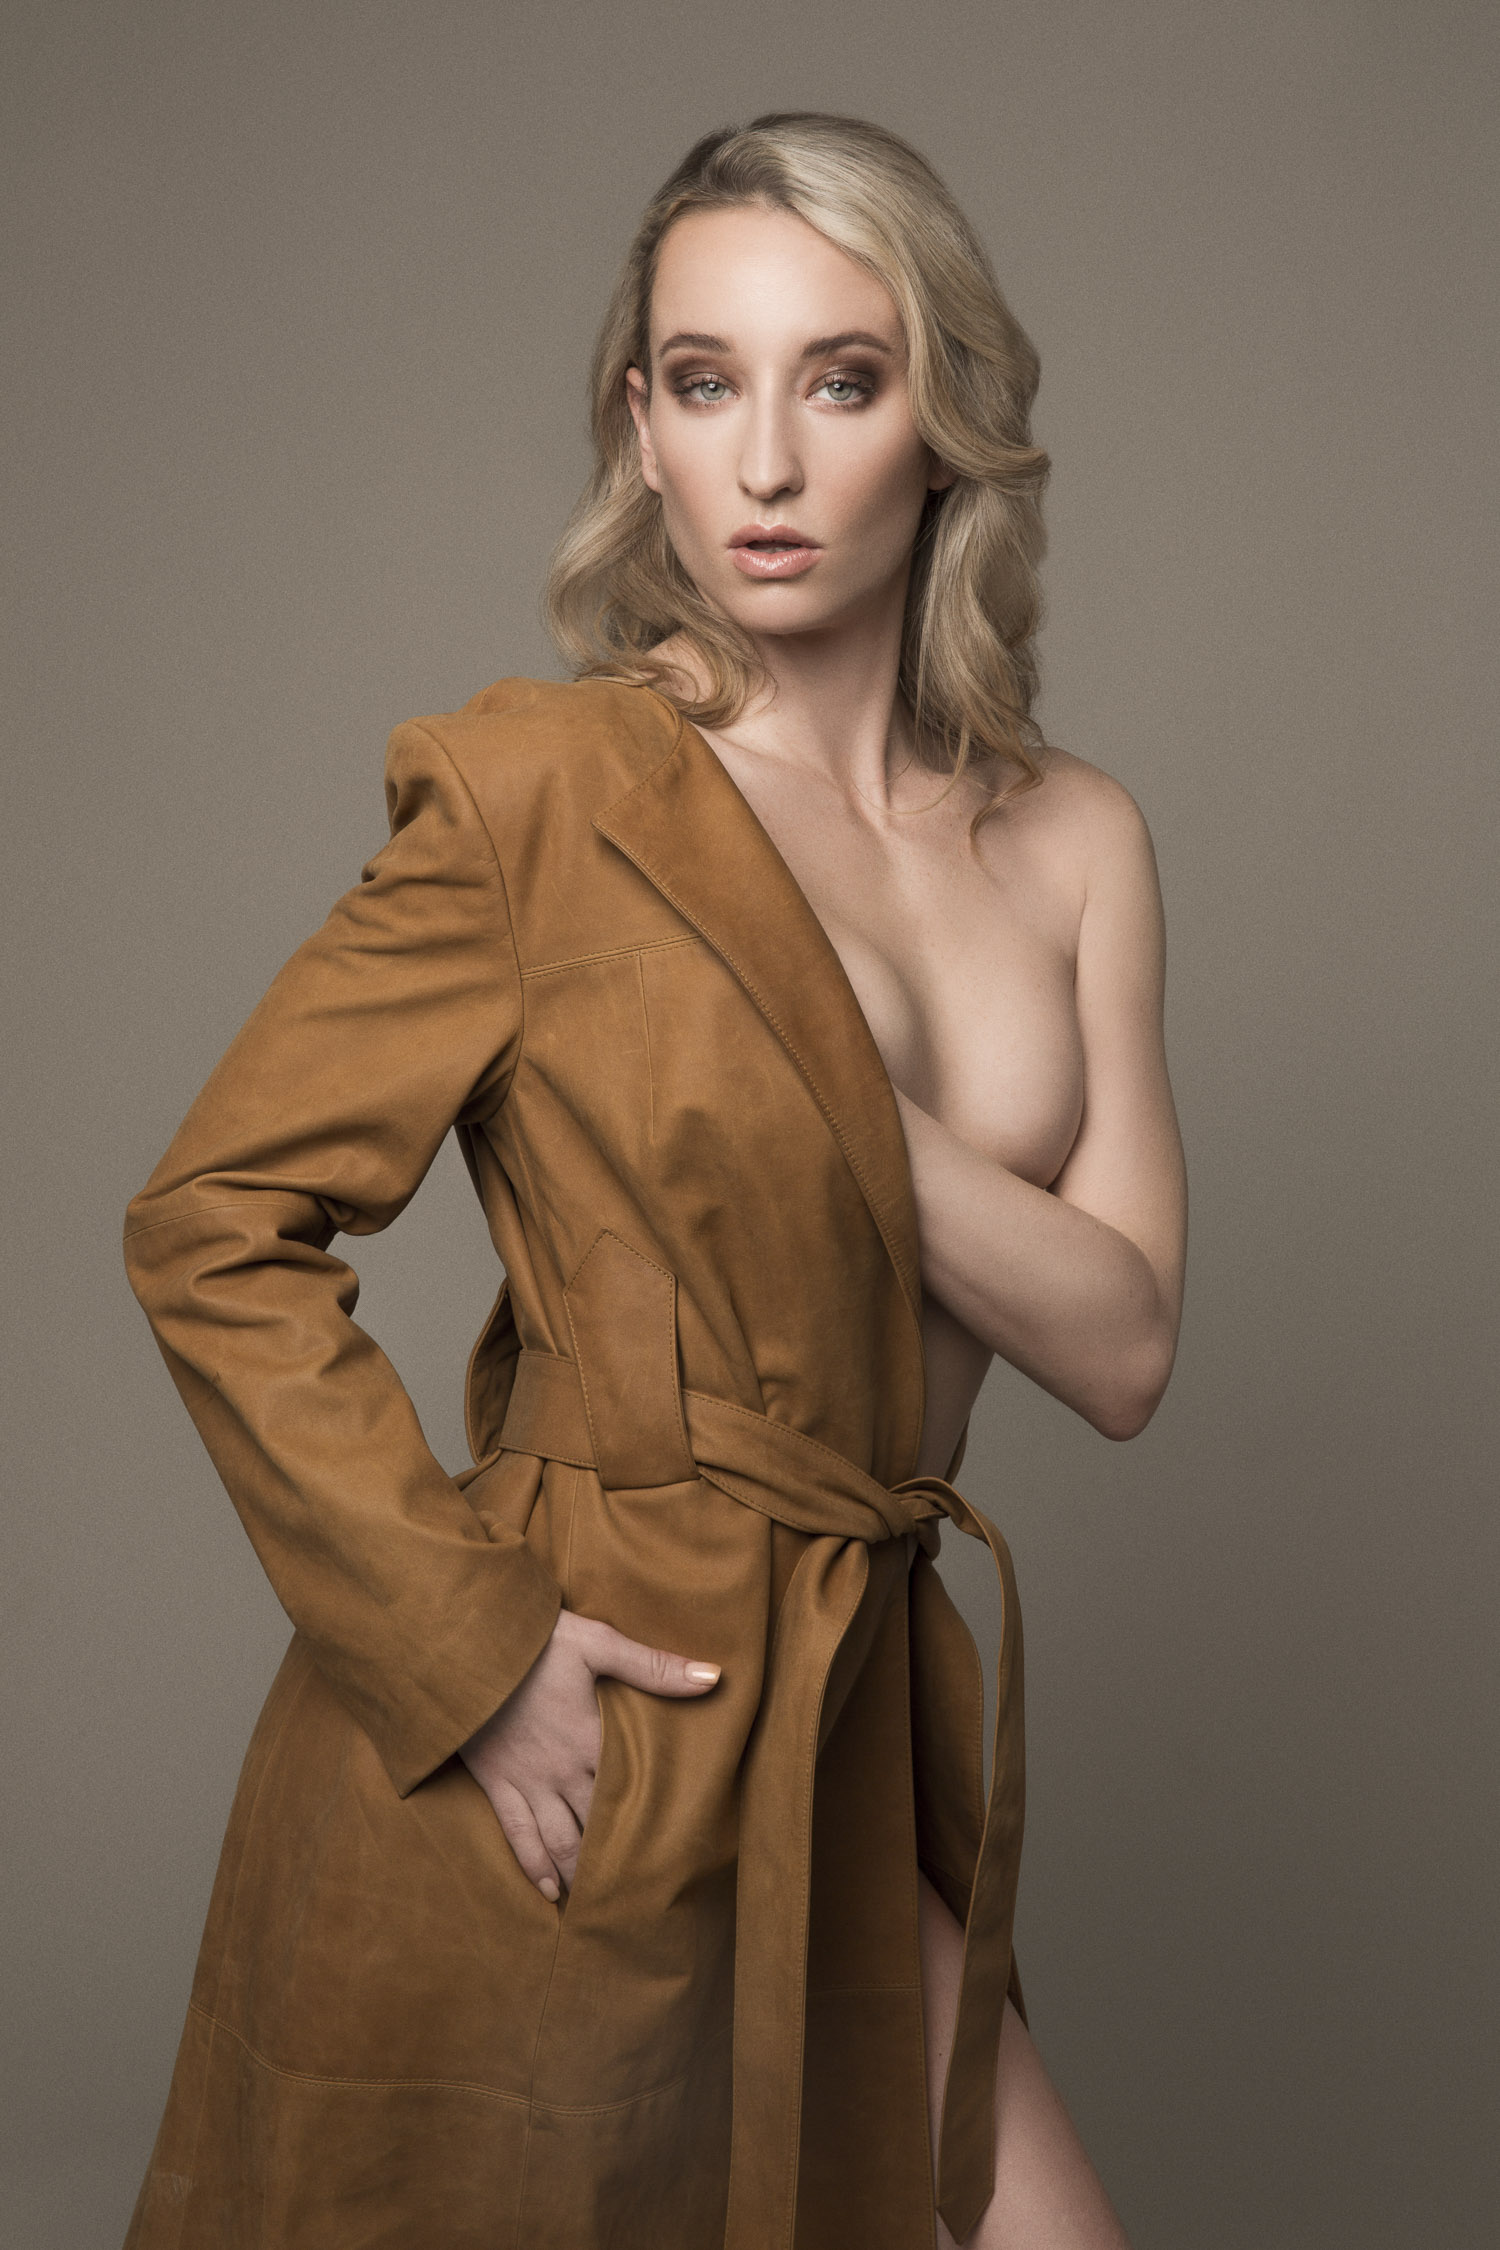 Model nude under a leather trenchcoat